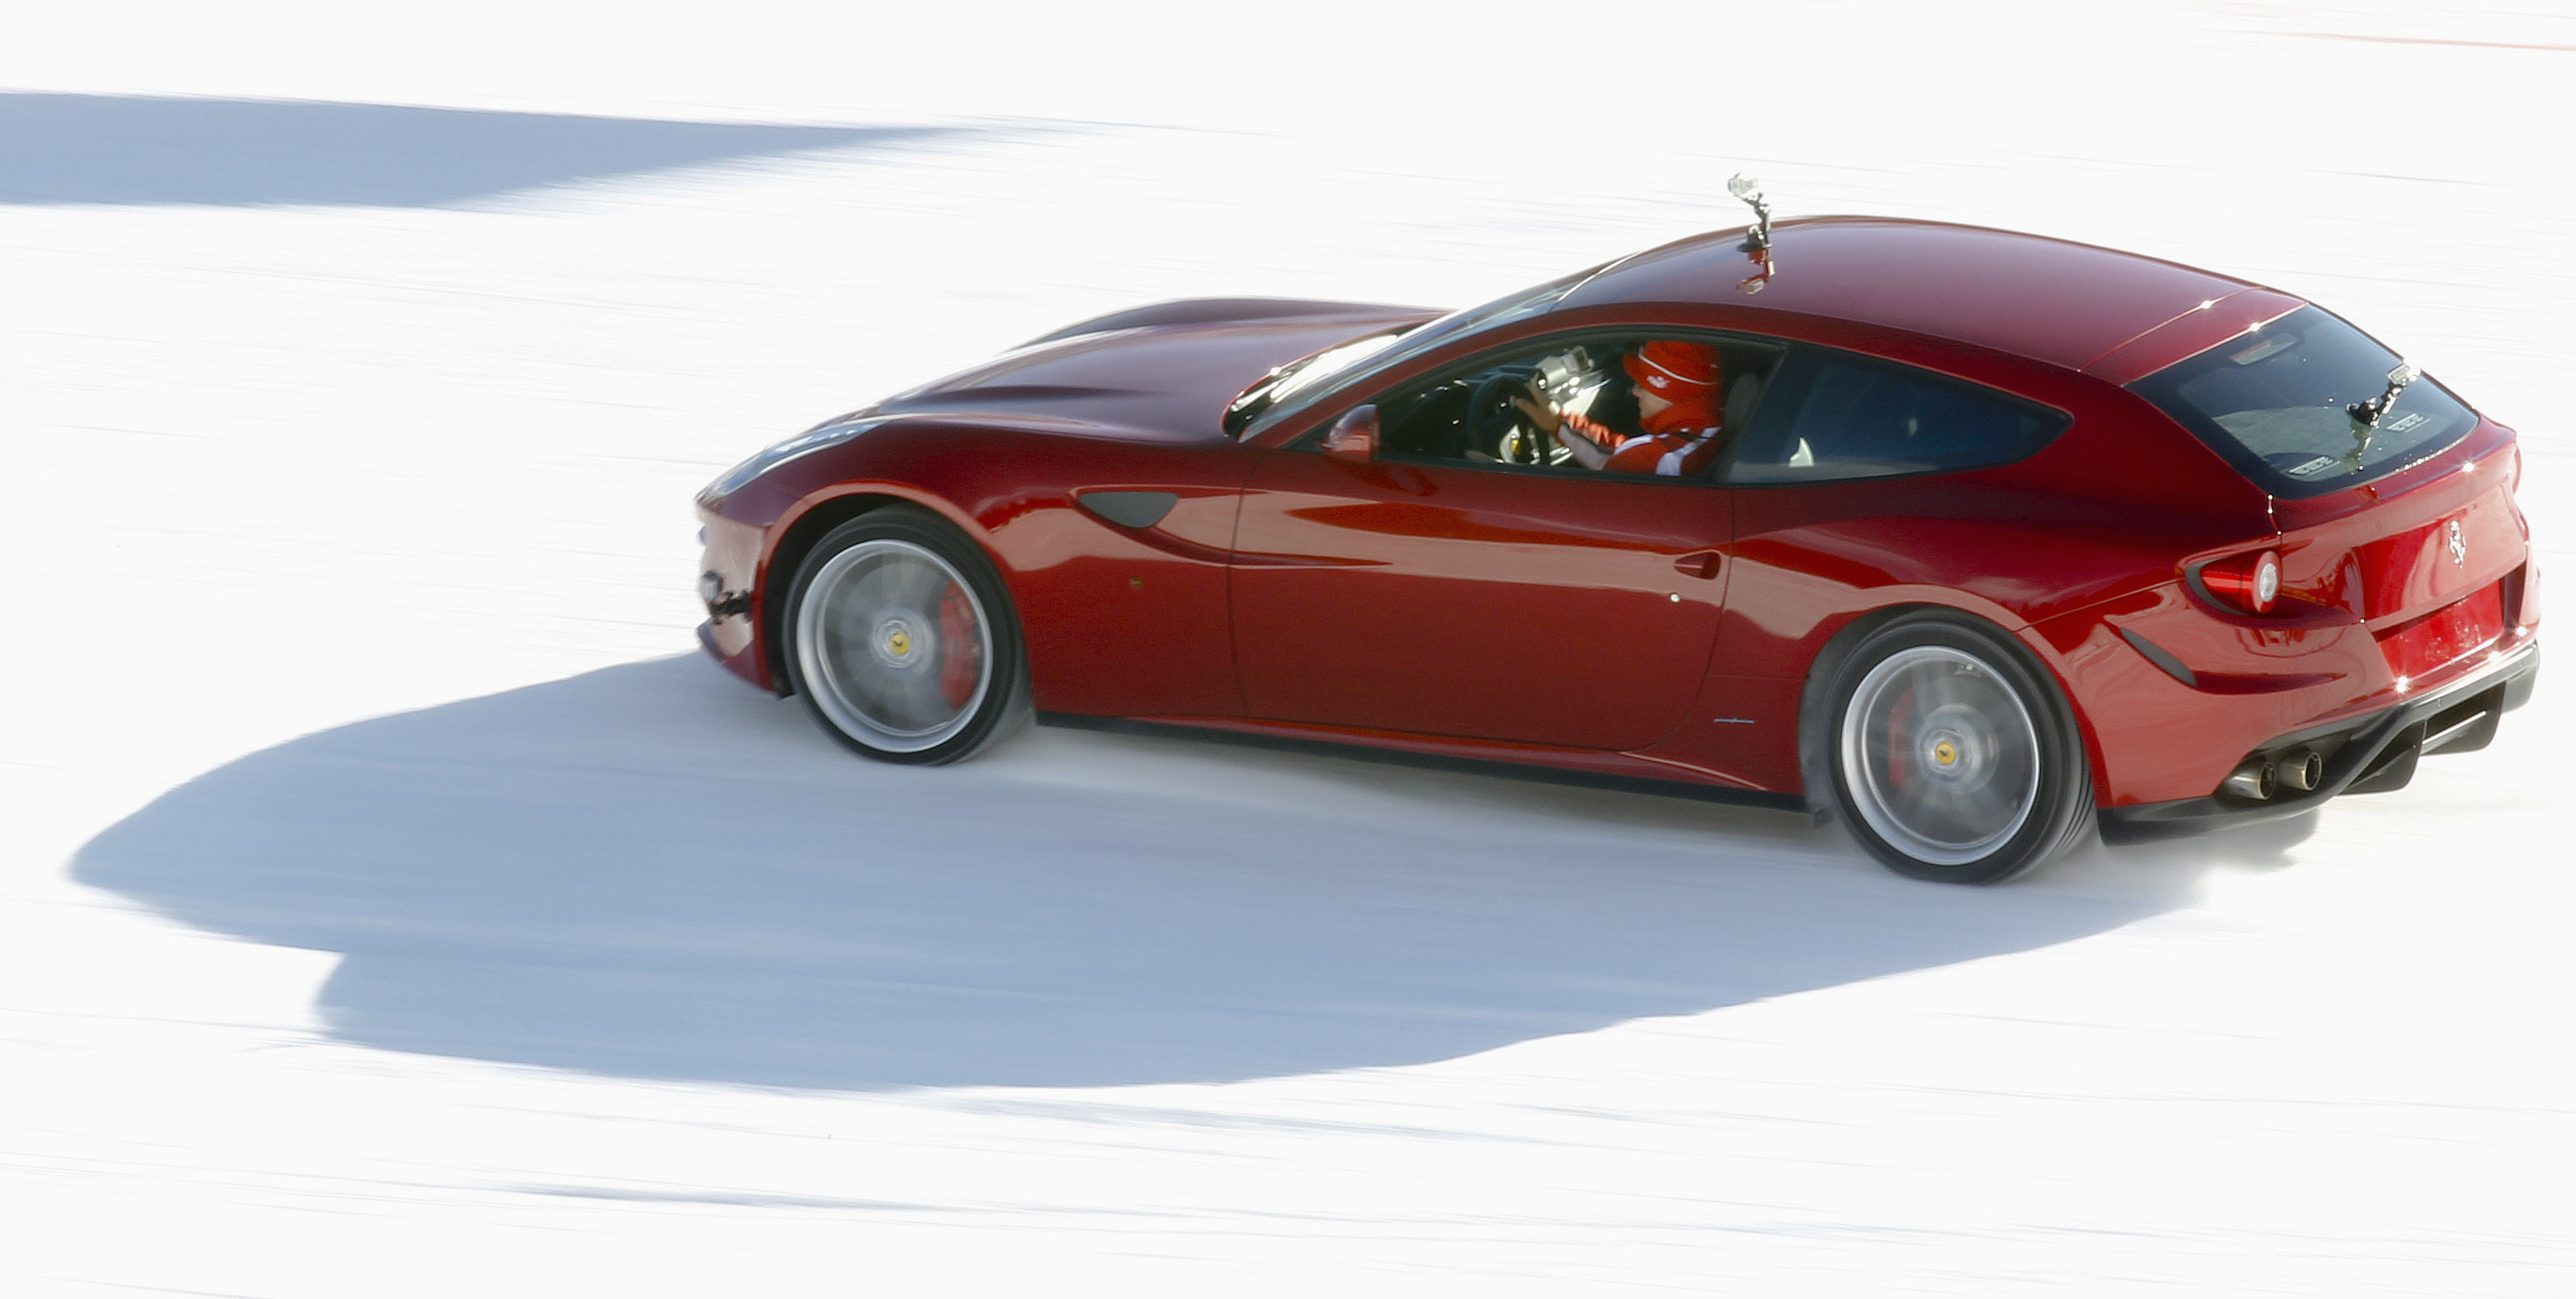 """A new model of Ferrari FF car is seen as it races on the snow during the """"Wrooom, F1 and MotoGP Press Ski Meeting"""" in Madonna di Campiglio"""